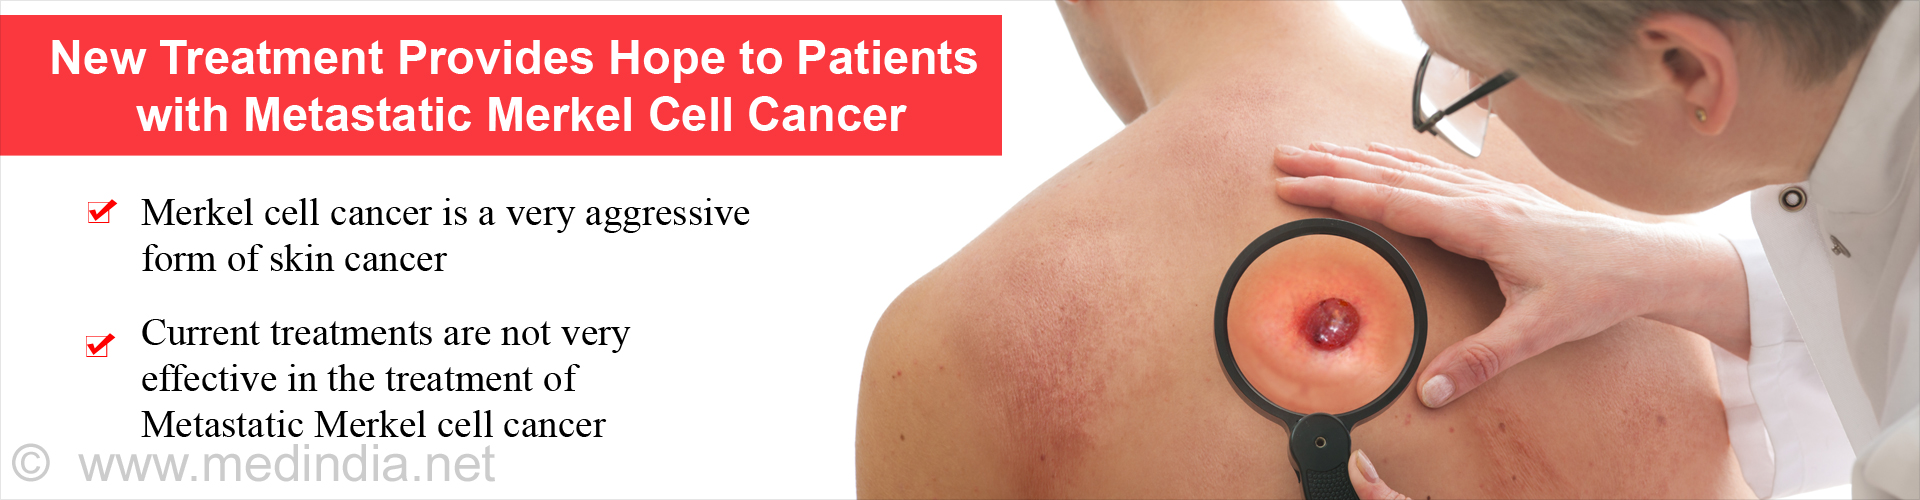 FDA Approves Avelumab for Metastatic Merkel Cell Skin Cancer